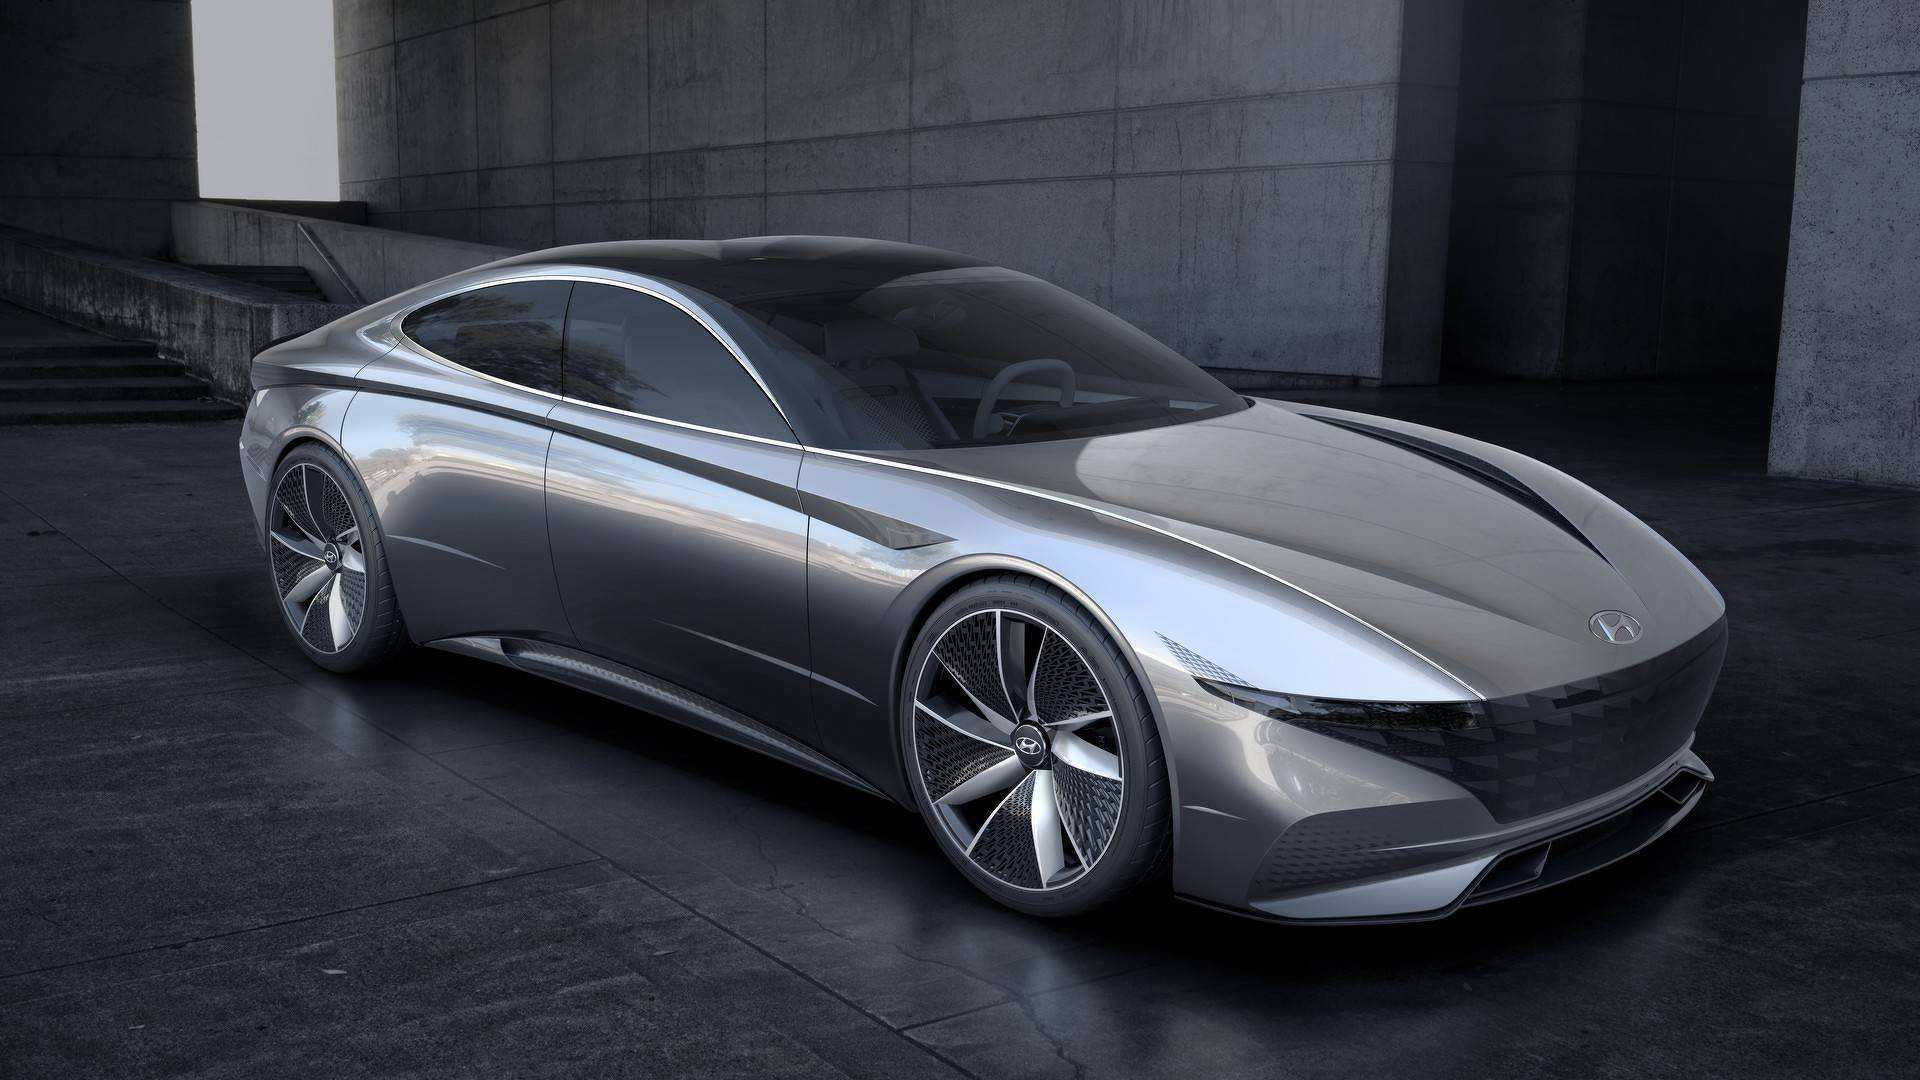 72 All New 2020 Hyundai Coupe Style